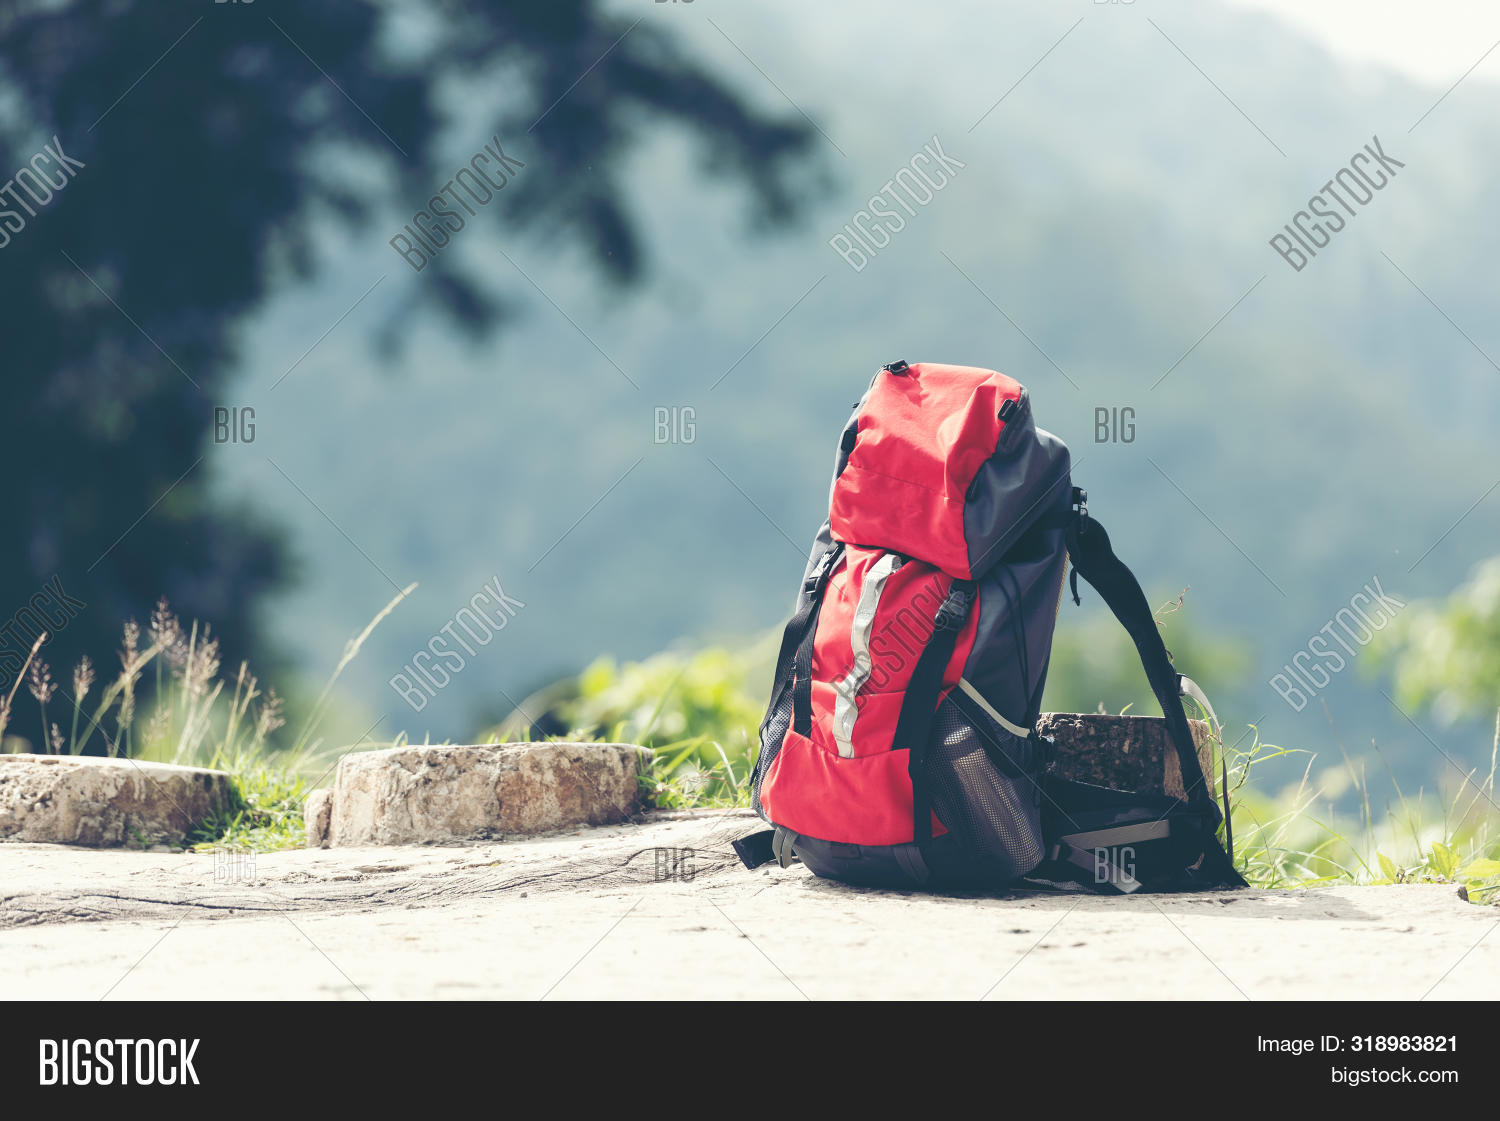 Hiking backpack travel gear on mountain. Items include hiking boots, cup, map, binoculars for travel destination and leisure in vacation. Flat lay of outdoor travel equipment items for mountain camping trip.